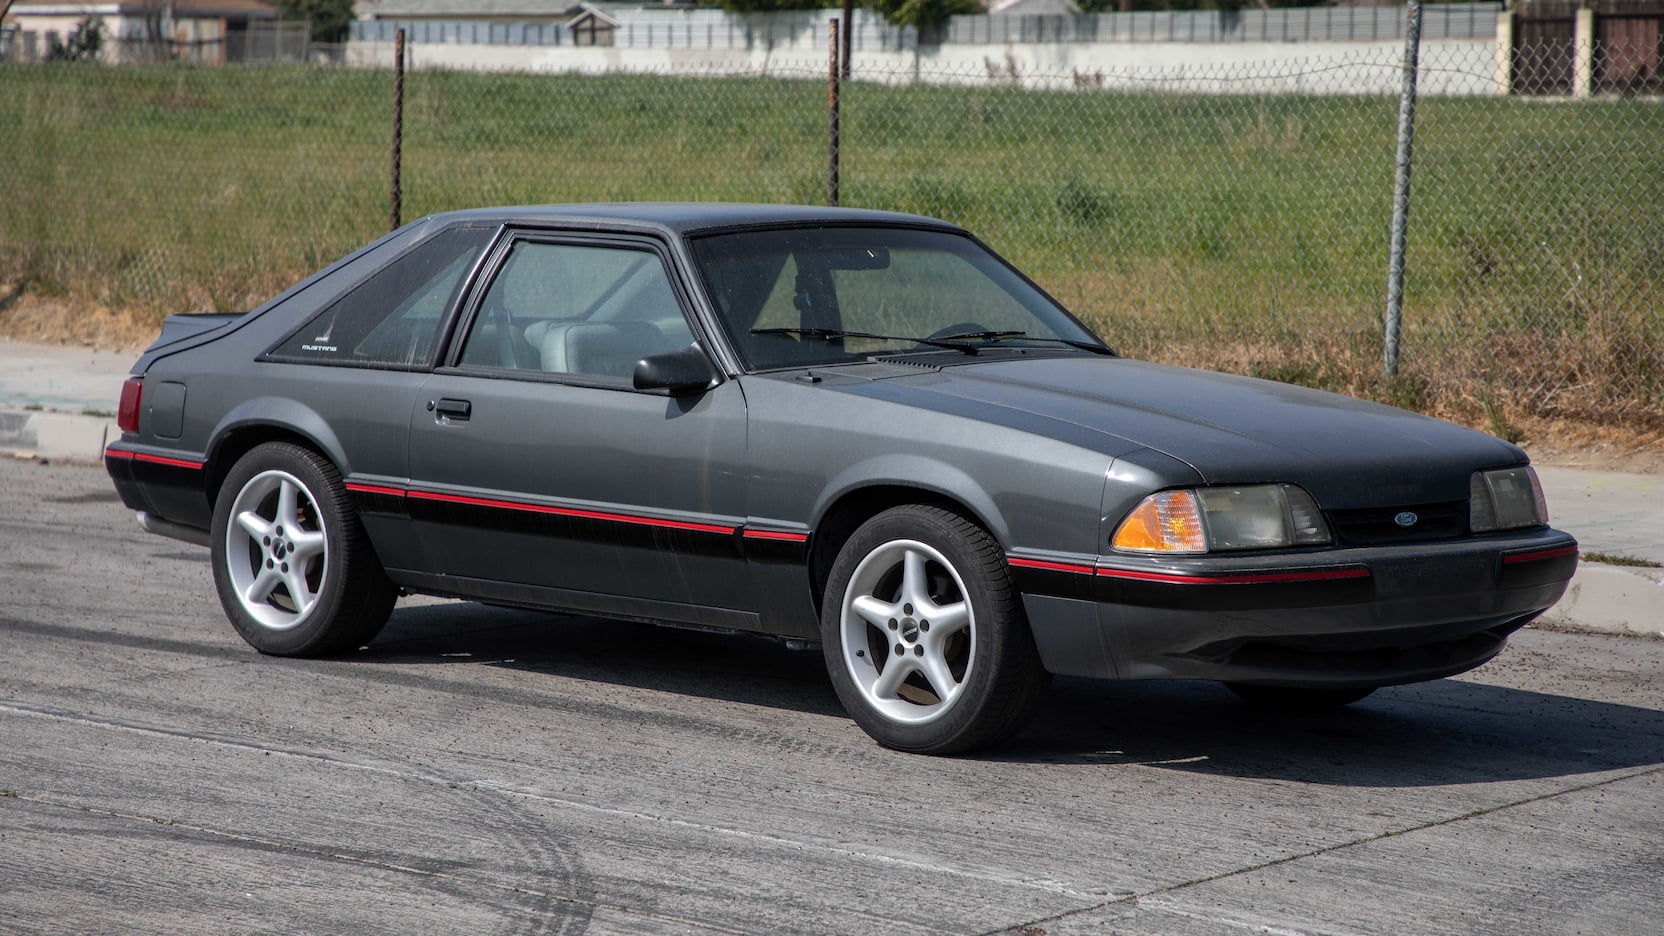 1989 Ford Mustang 5.0 LX